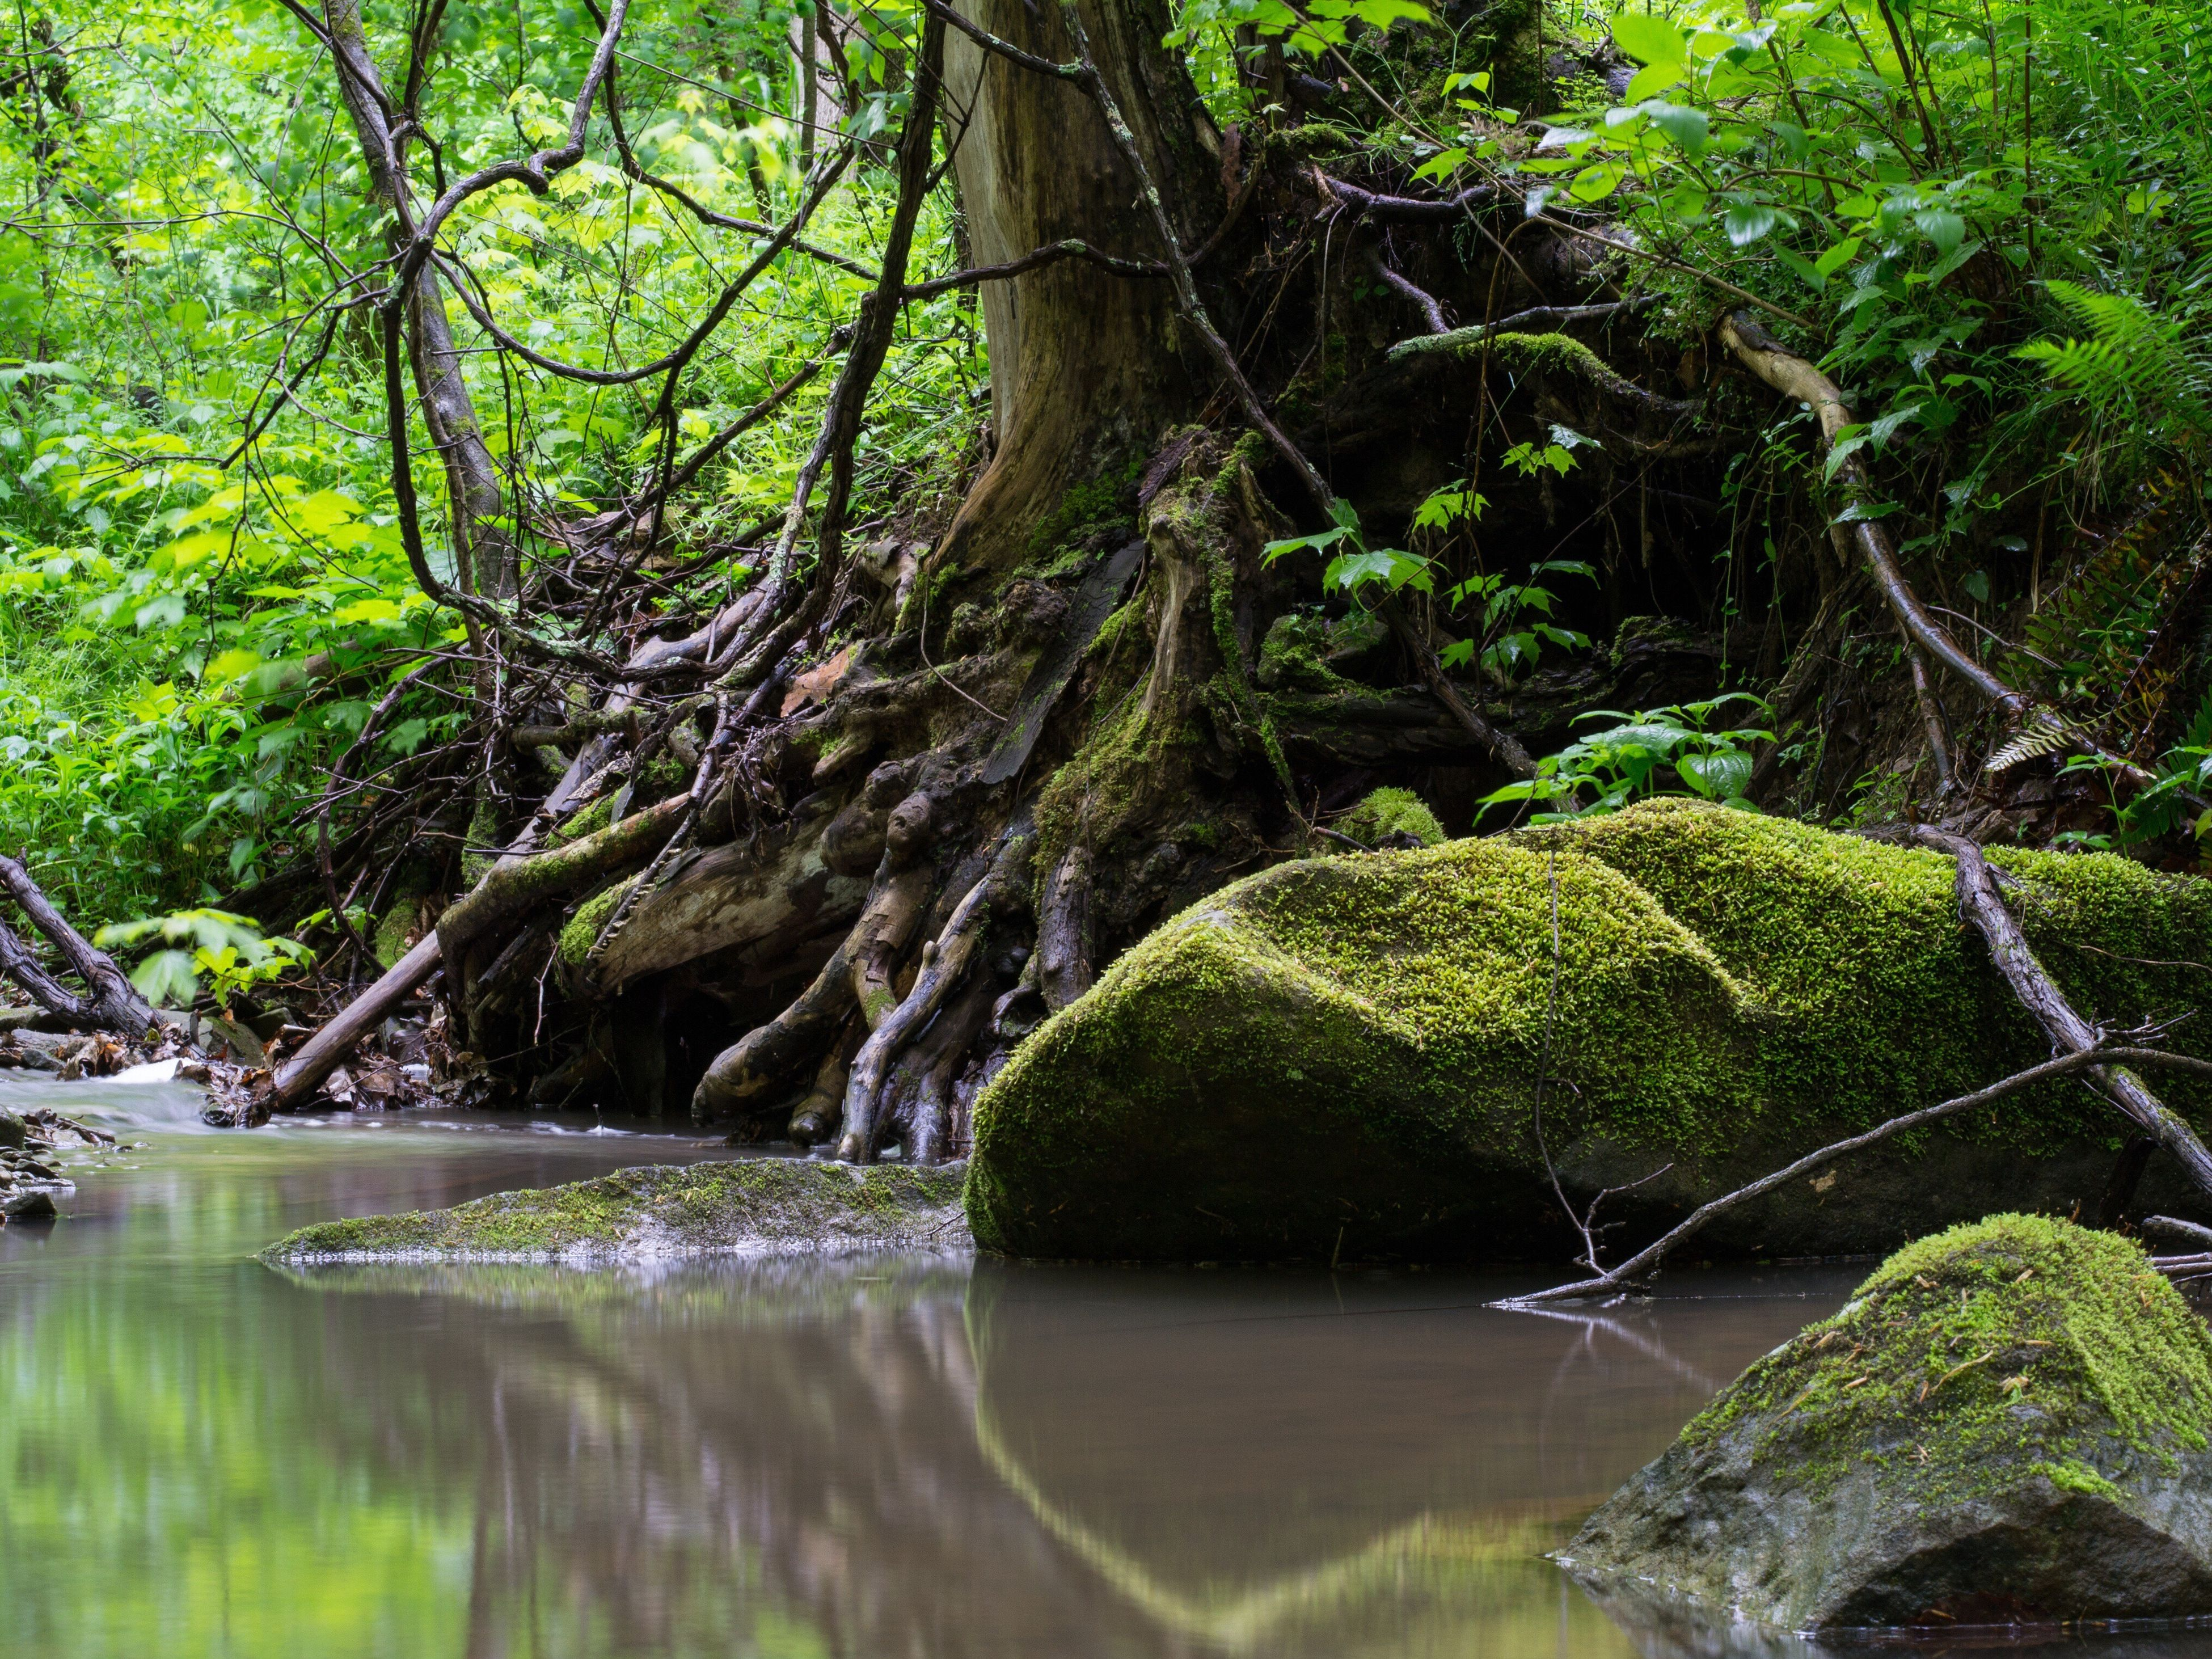 tree, nature, water, forest, green color, tranquility, tranquil scene, plant, outdoors, tree trunk, lake, scenics, growth, no people, beauty in nature, branch, landscape, day, freshness